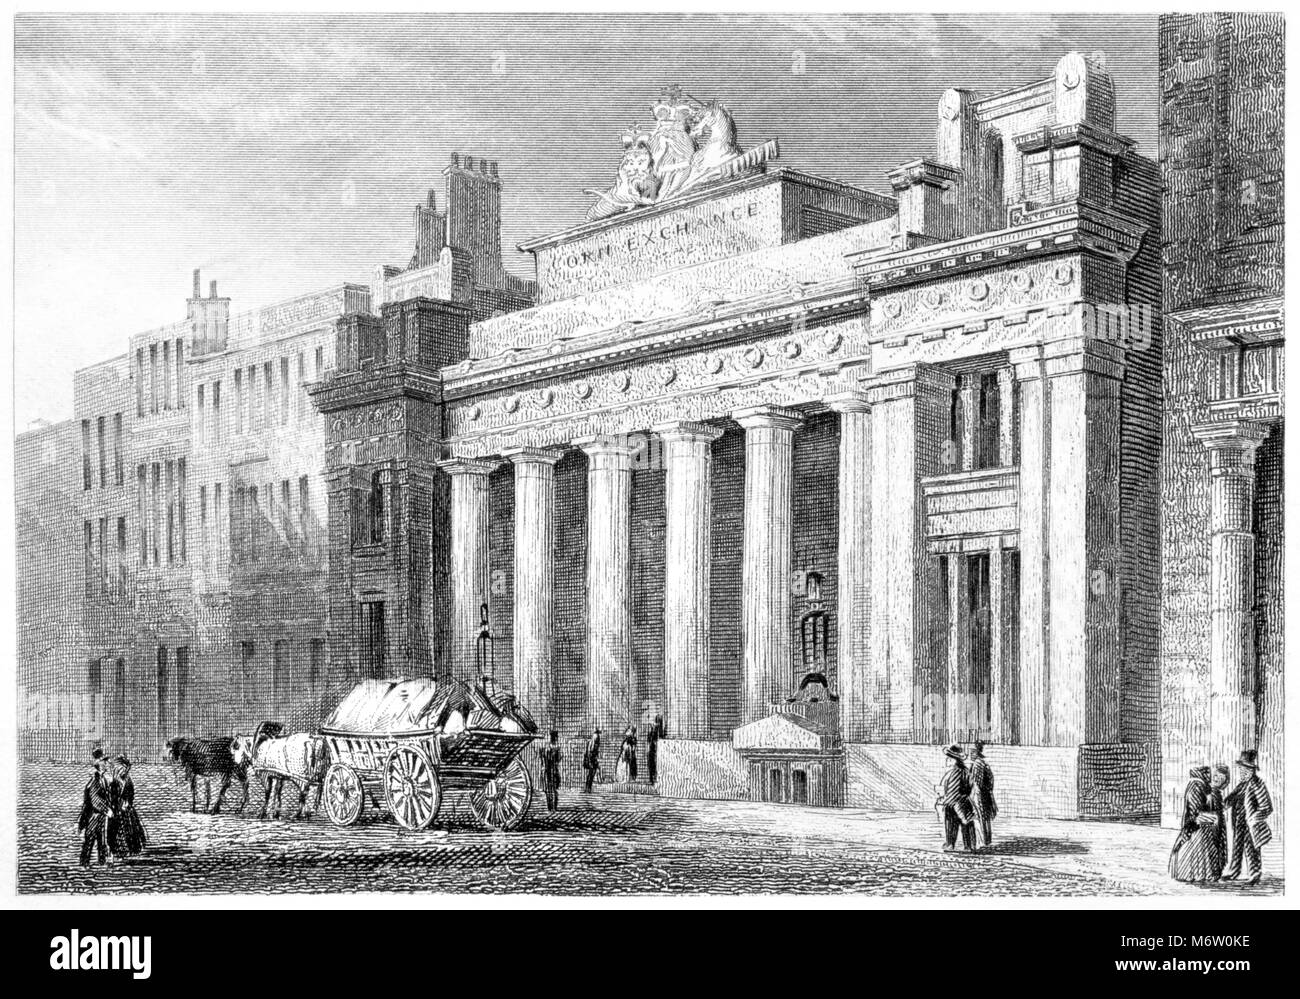 An engraving of The Corn Exchange, Mark Lane, London scanned at high resolution from a book printed in 1851.  Believed - Stock Image